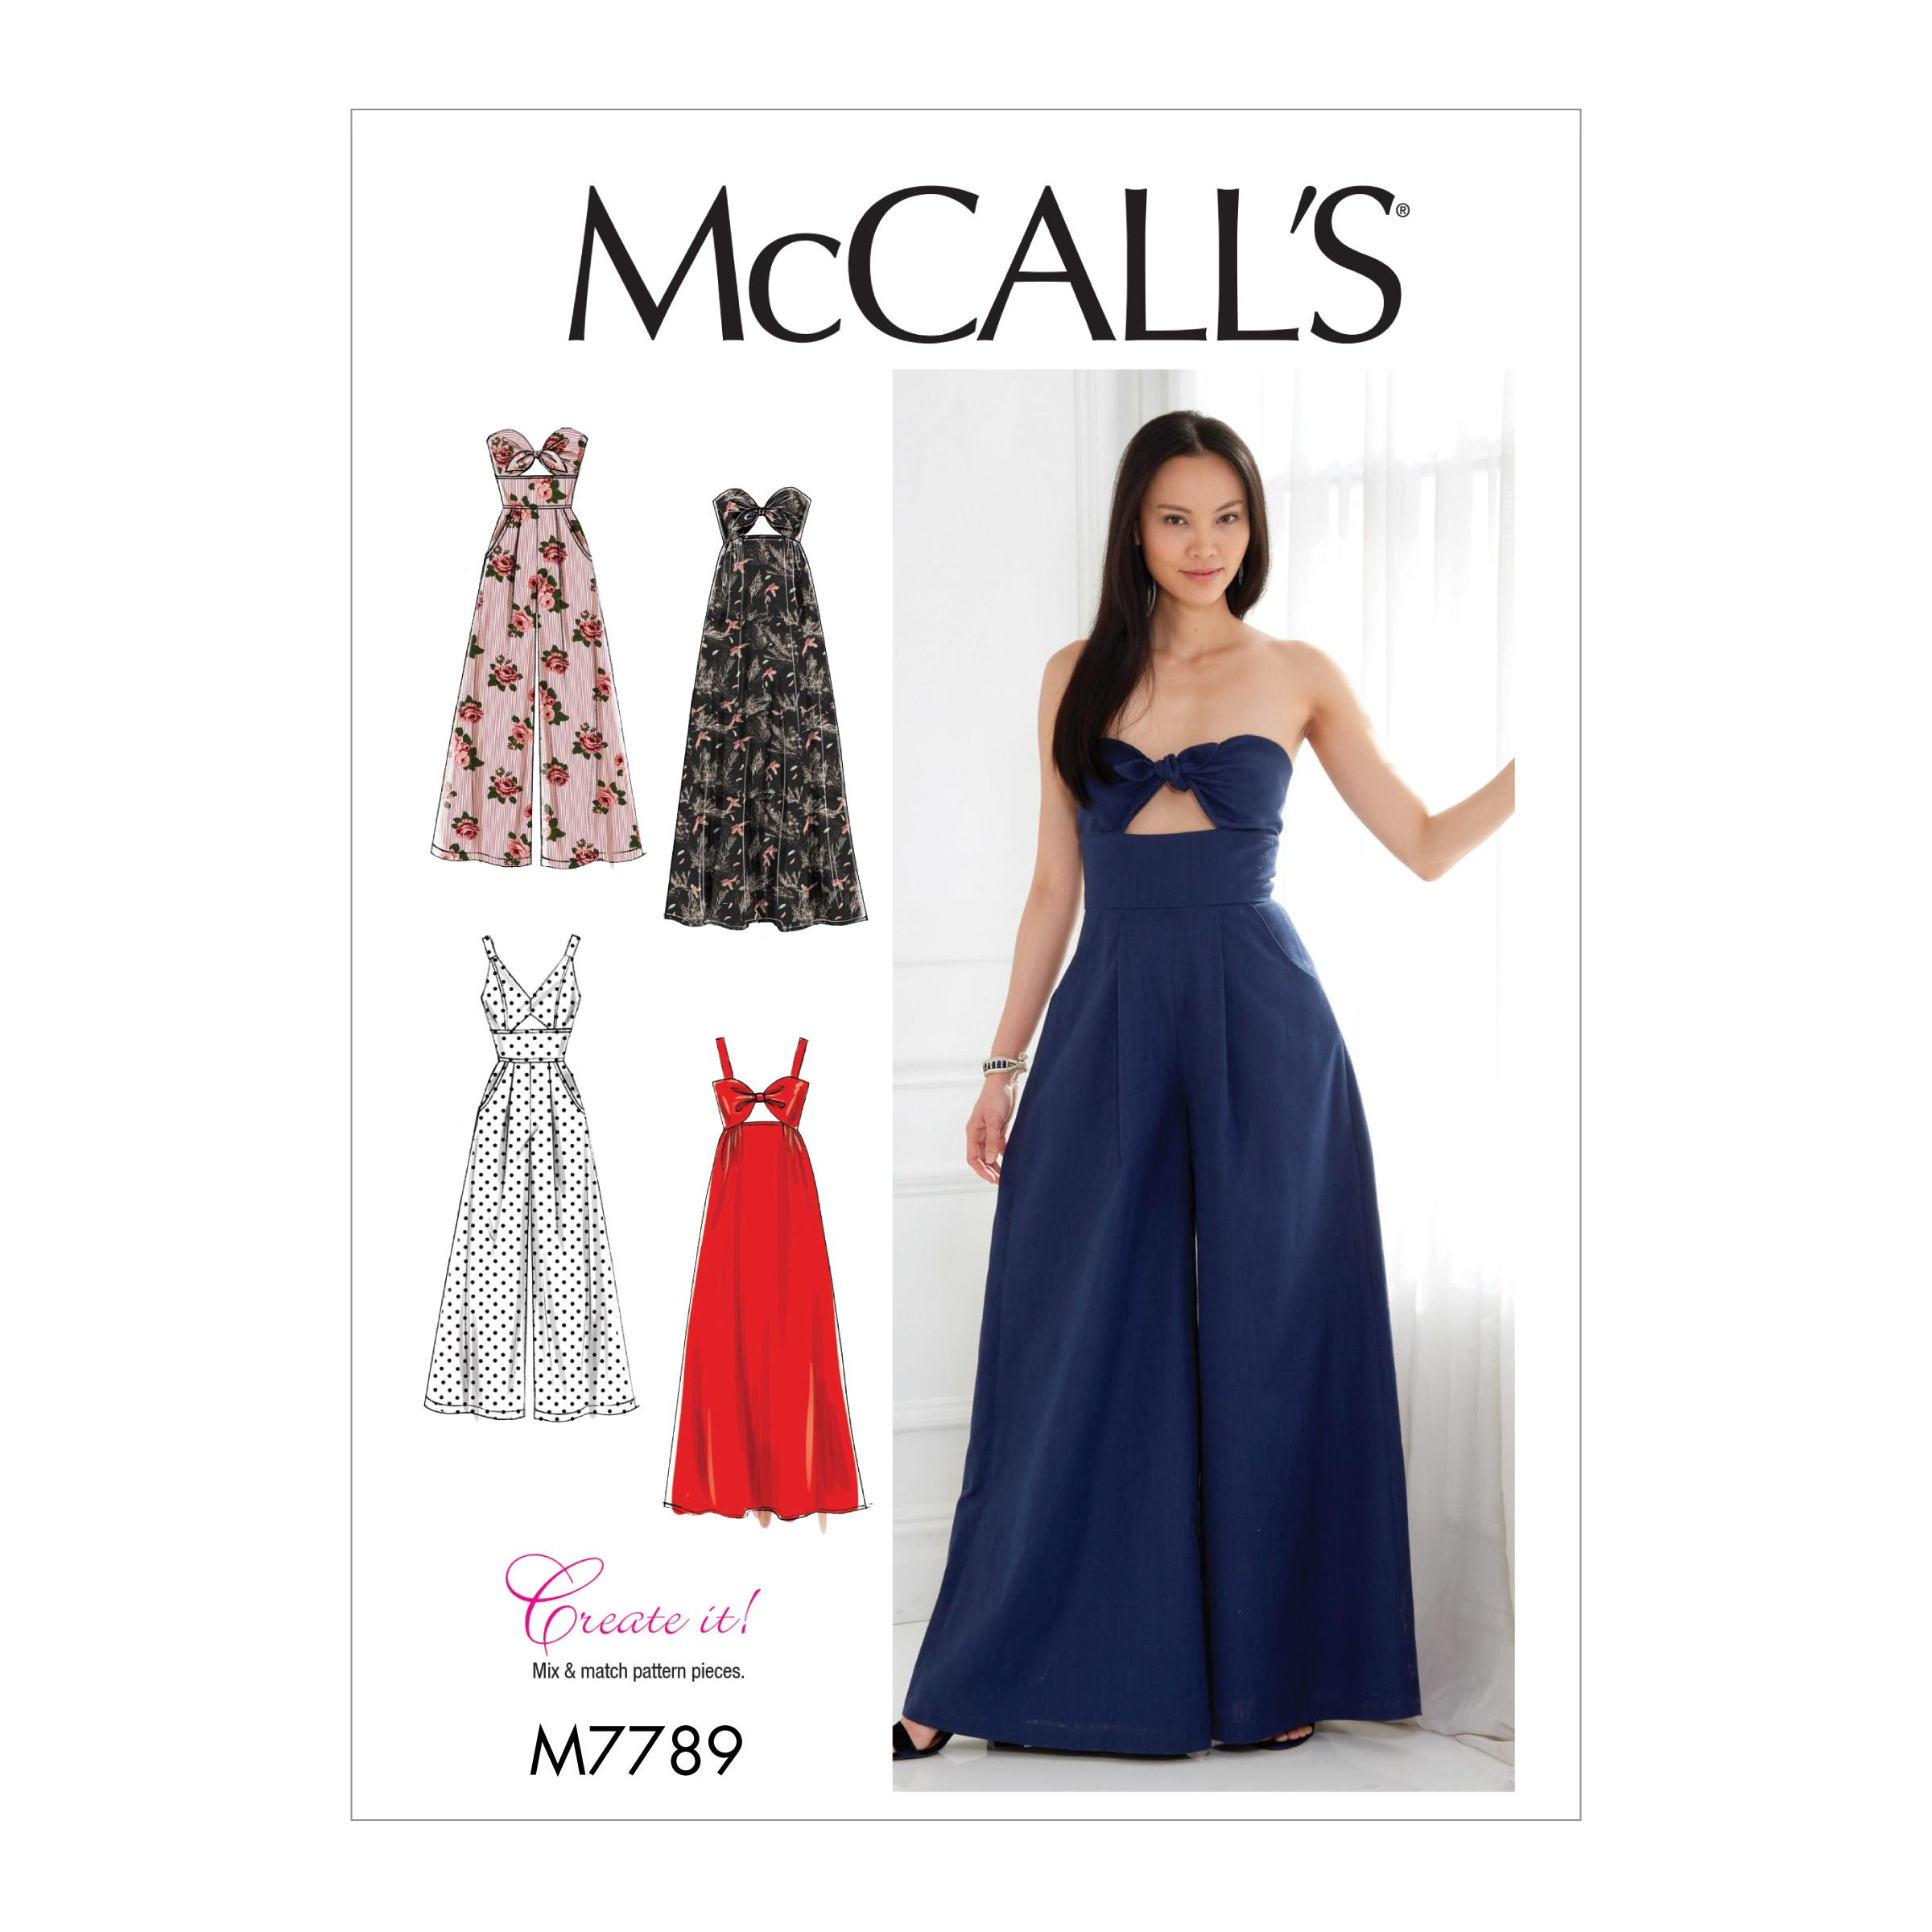 McCalls M7789 Misses Dresses, Misses Pants, Jumpsuits & Shorts